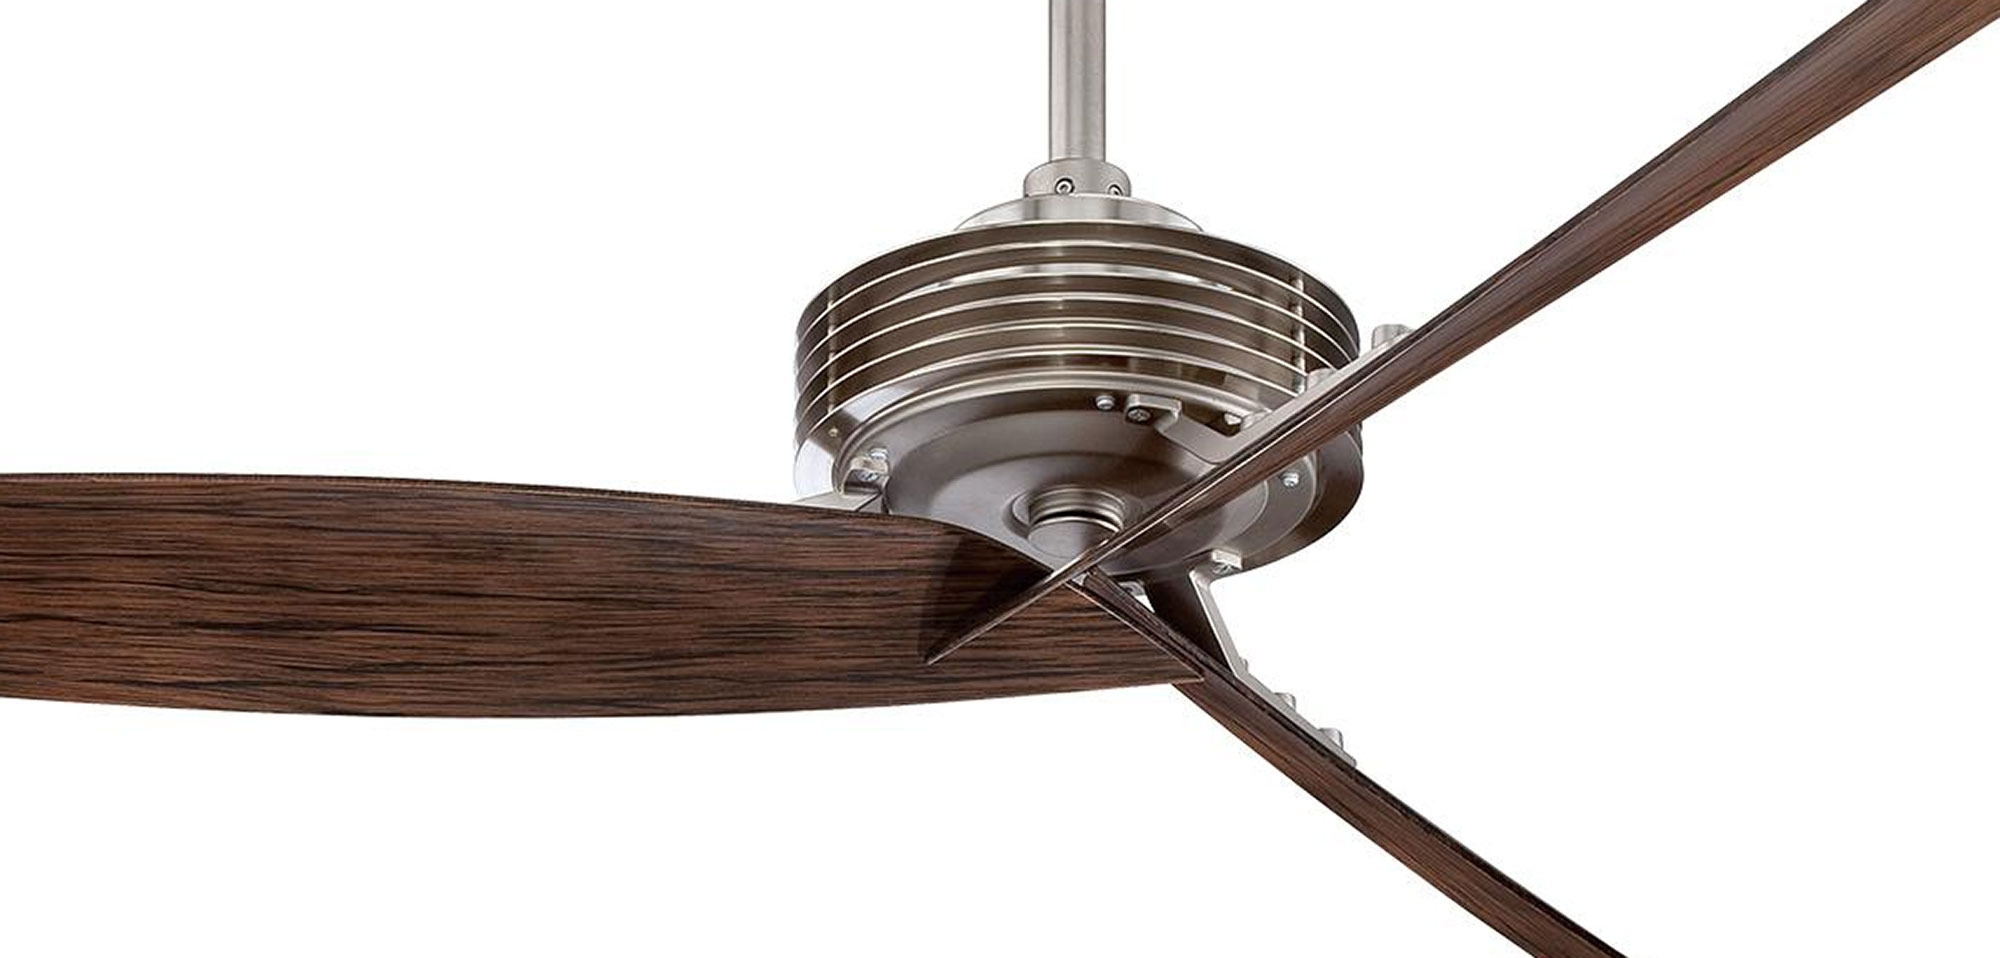 Unique Ceiling Fans For Modern Home Design – Interior Decorating Regarding Fashionable Quality Outdoor Ceiling Fans (Gallery 19 of 20)